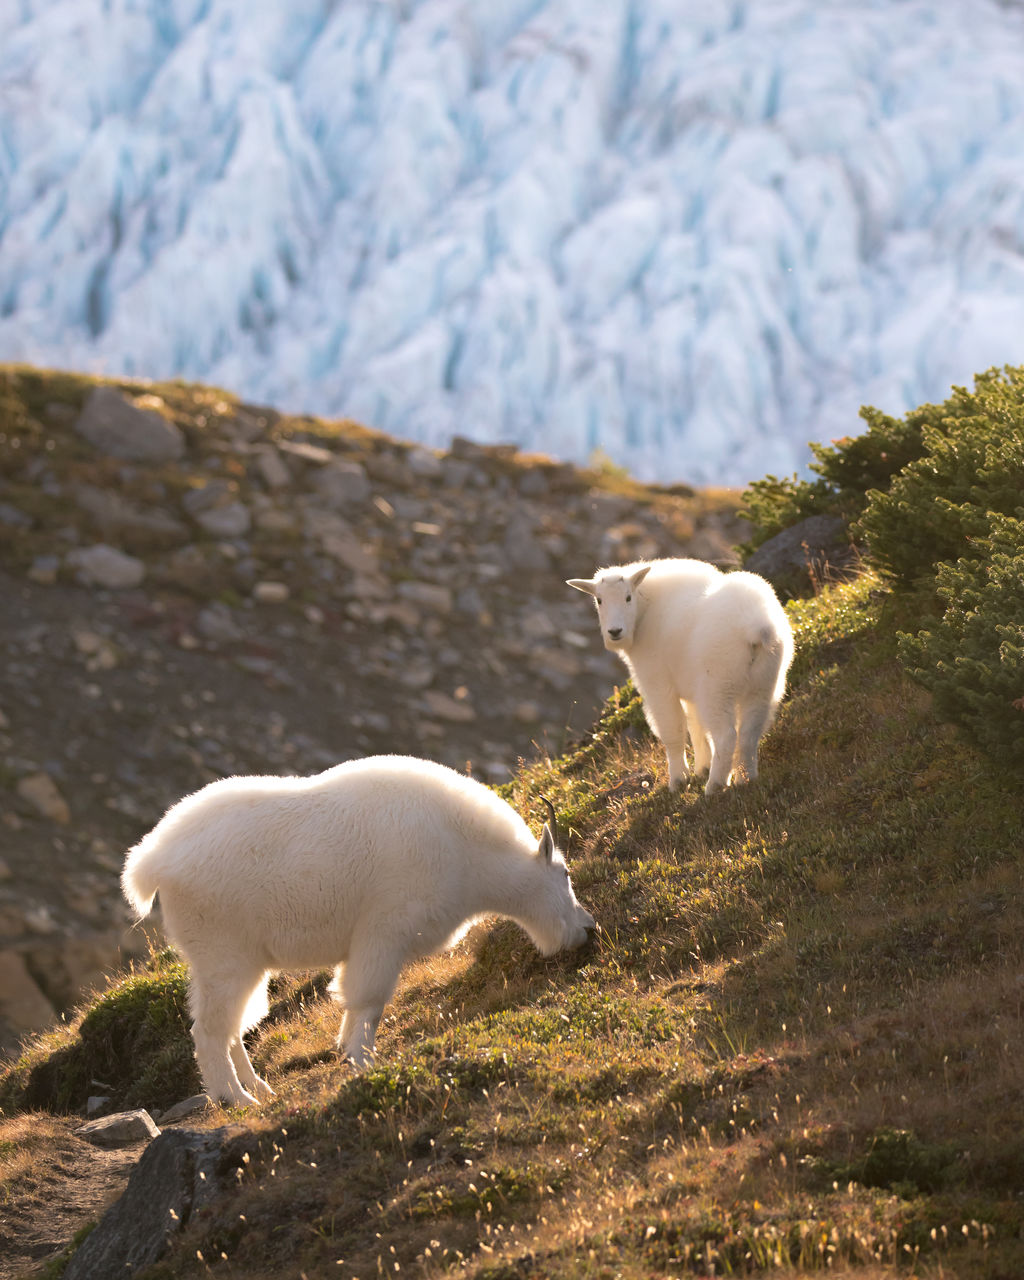 mammal, animal themes, animal, domestic animals, domestic, group of animals, pets, vertebrate, livestock, white color, two animals, land, no people, field, nature, day, mountain, sheep, animal wildlife, outdoors, herbivorous